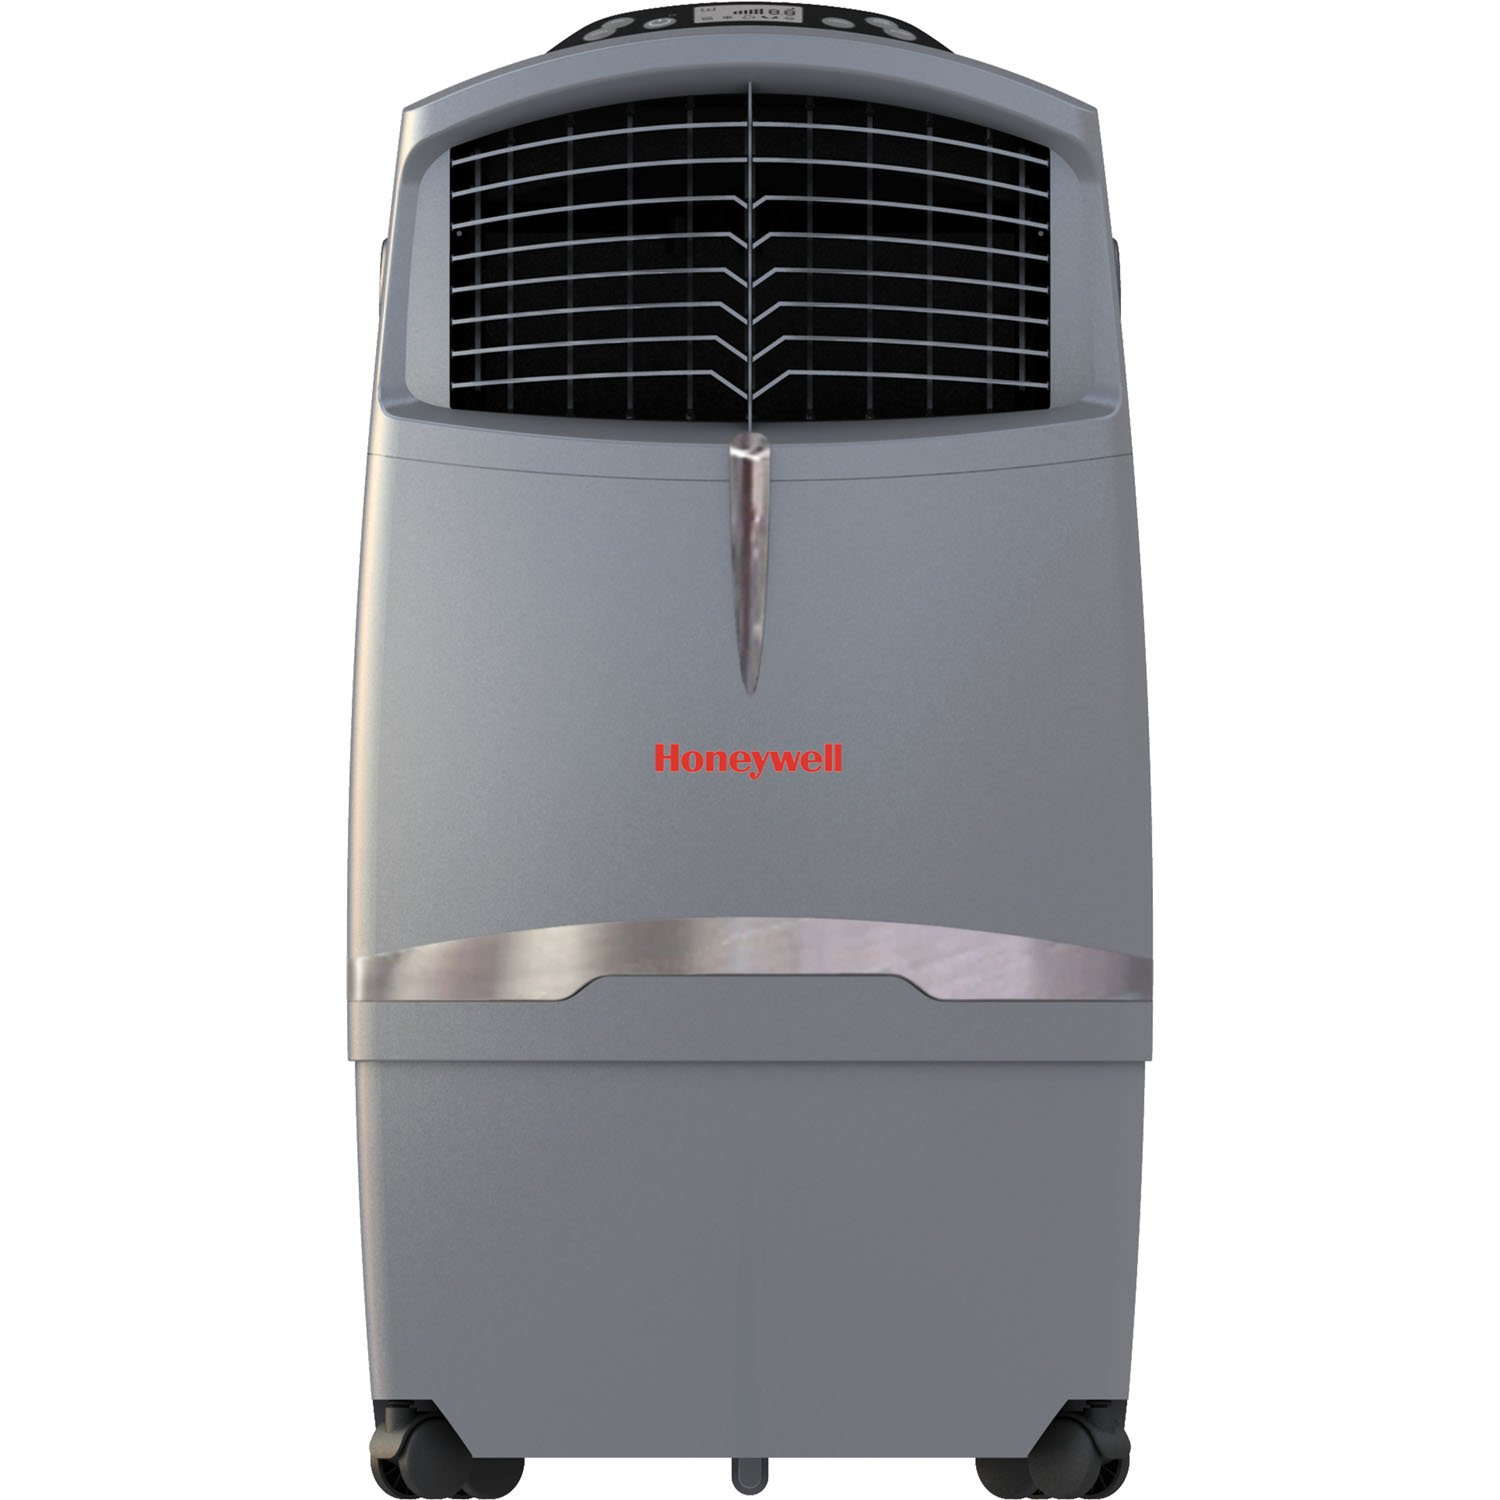 10 Best Evaporative Coolers Evaporative Air Cooler Reviews 2019